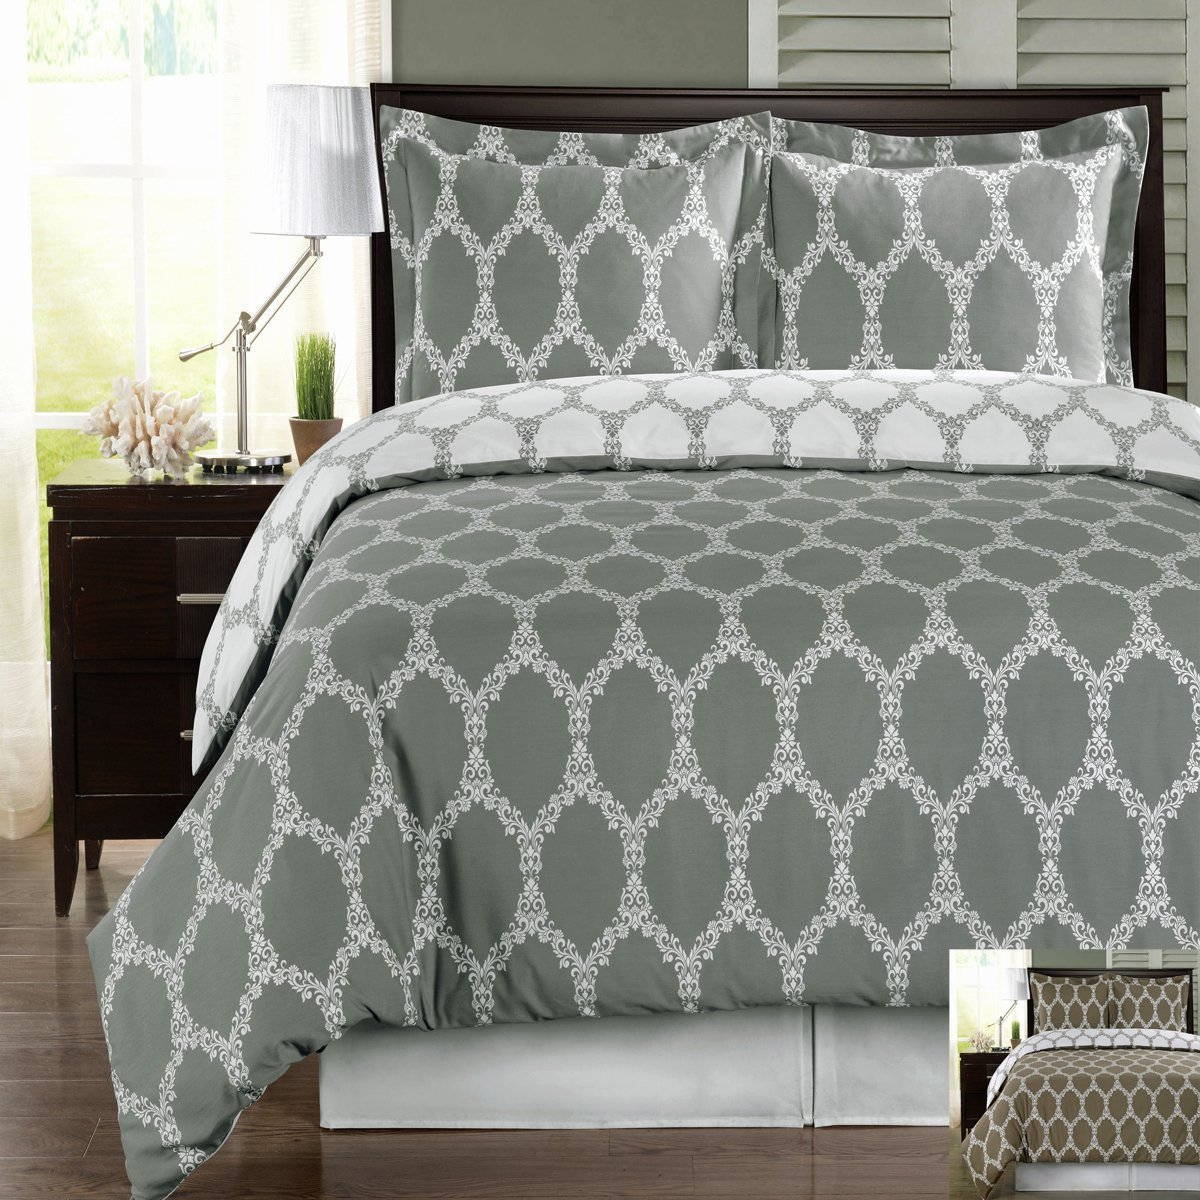 gray and white duvet cover set  sweetgalas -  best grey and white duvet cover sets that won t break the bank